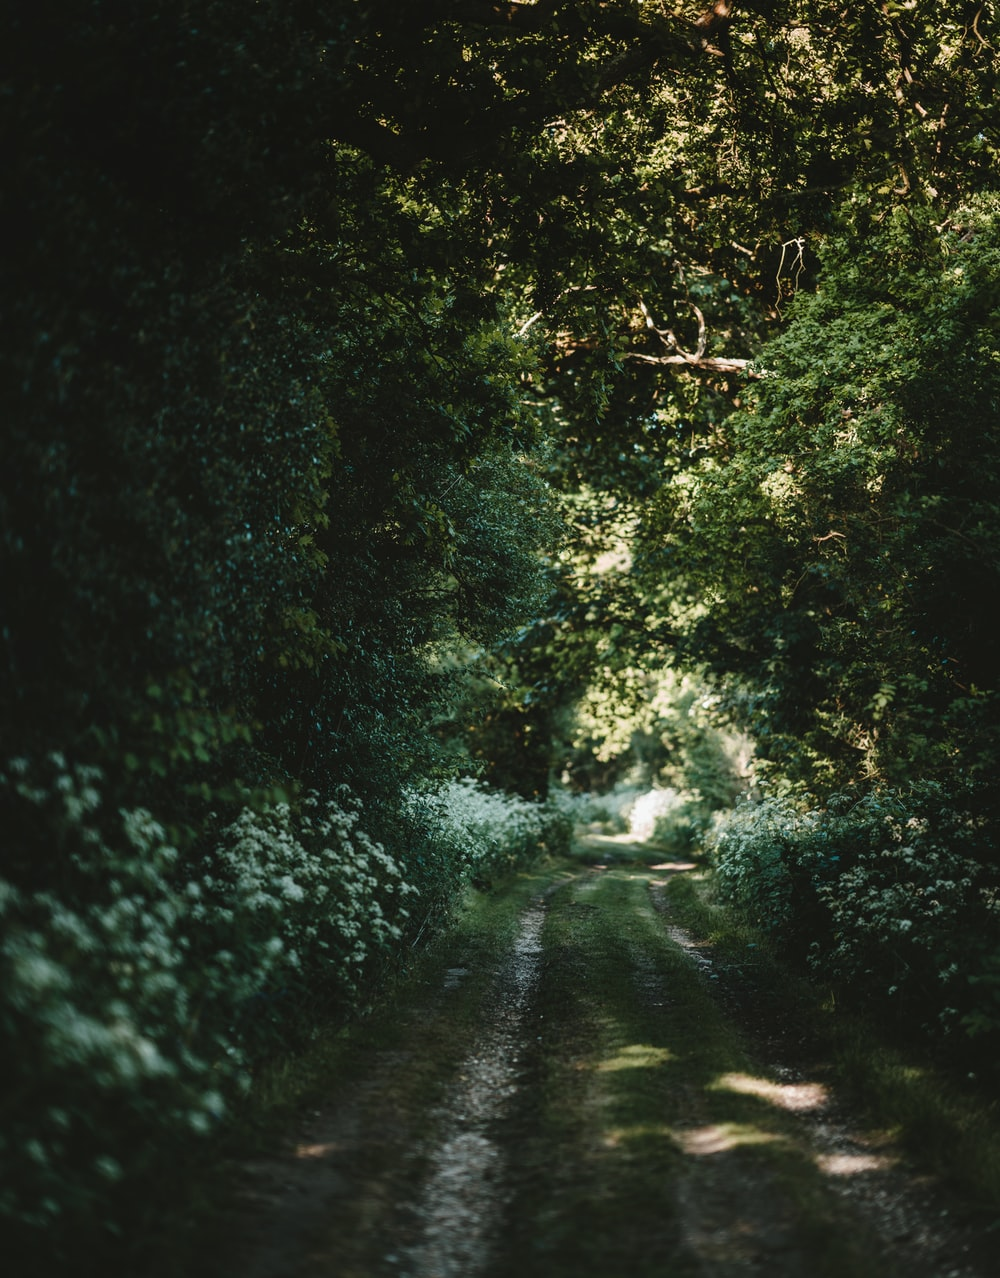 photo of dirt road surrounded by green trees